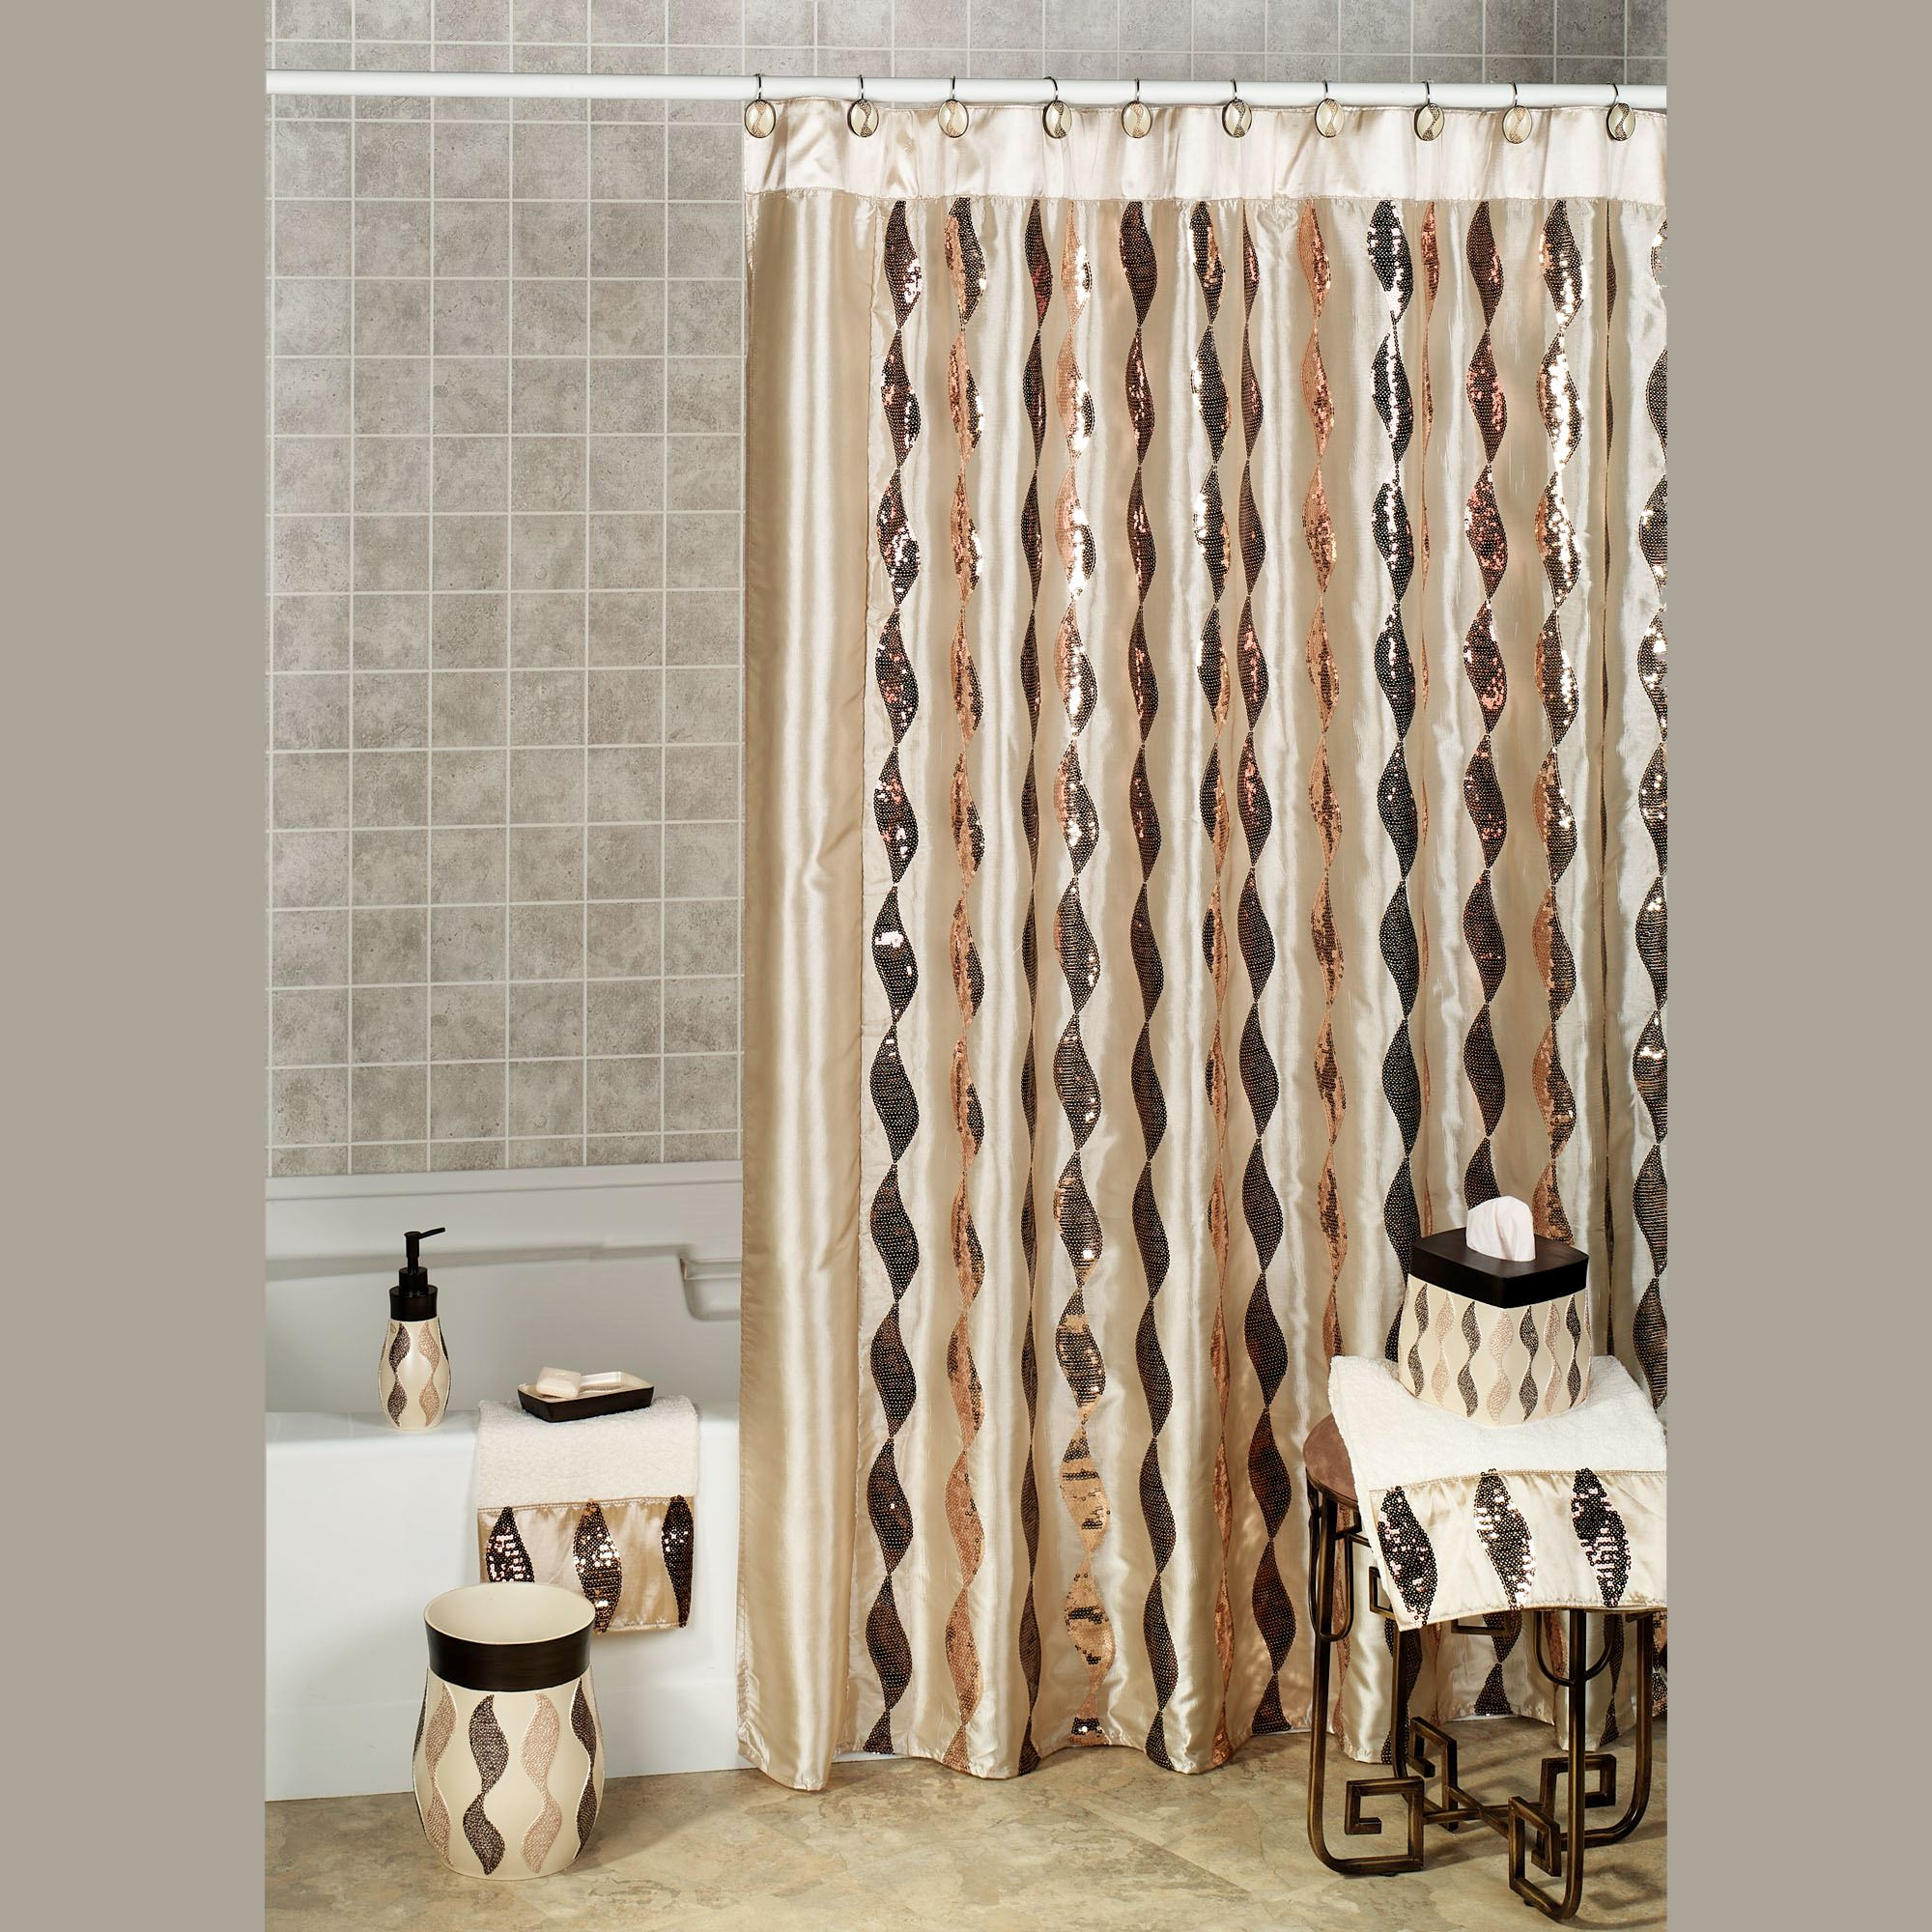 Shower Curtain Gold Curtain Ideas inside sizing 2000 X 2000